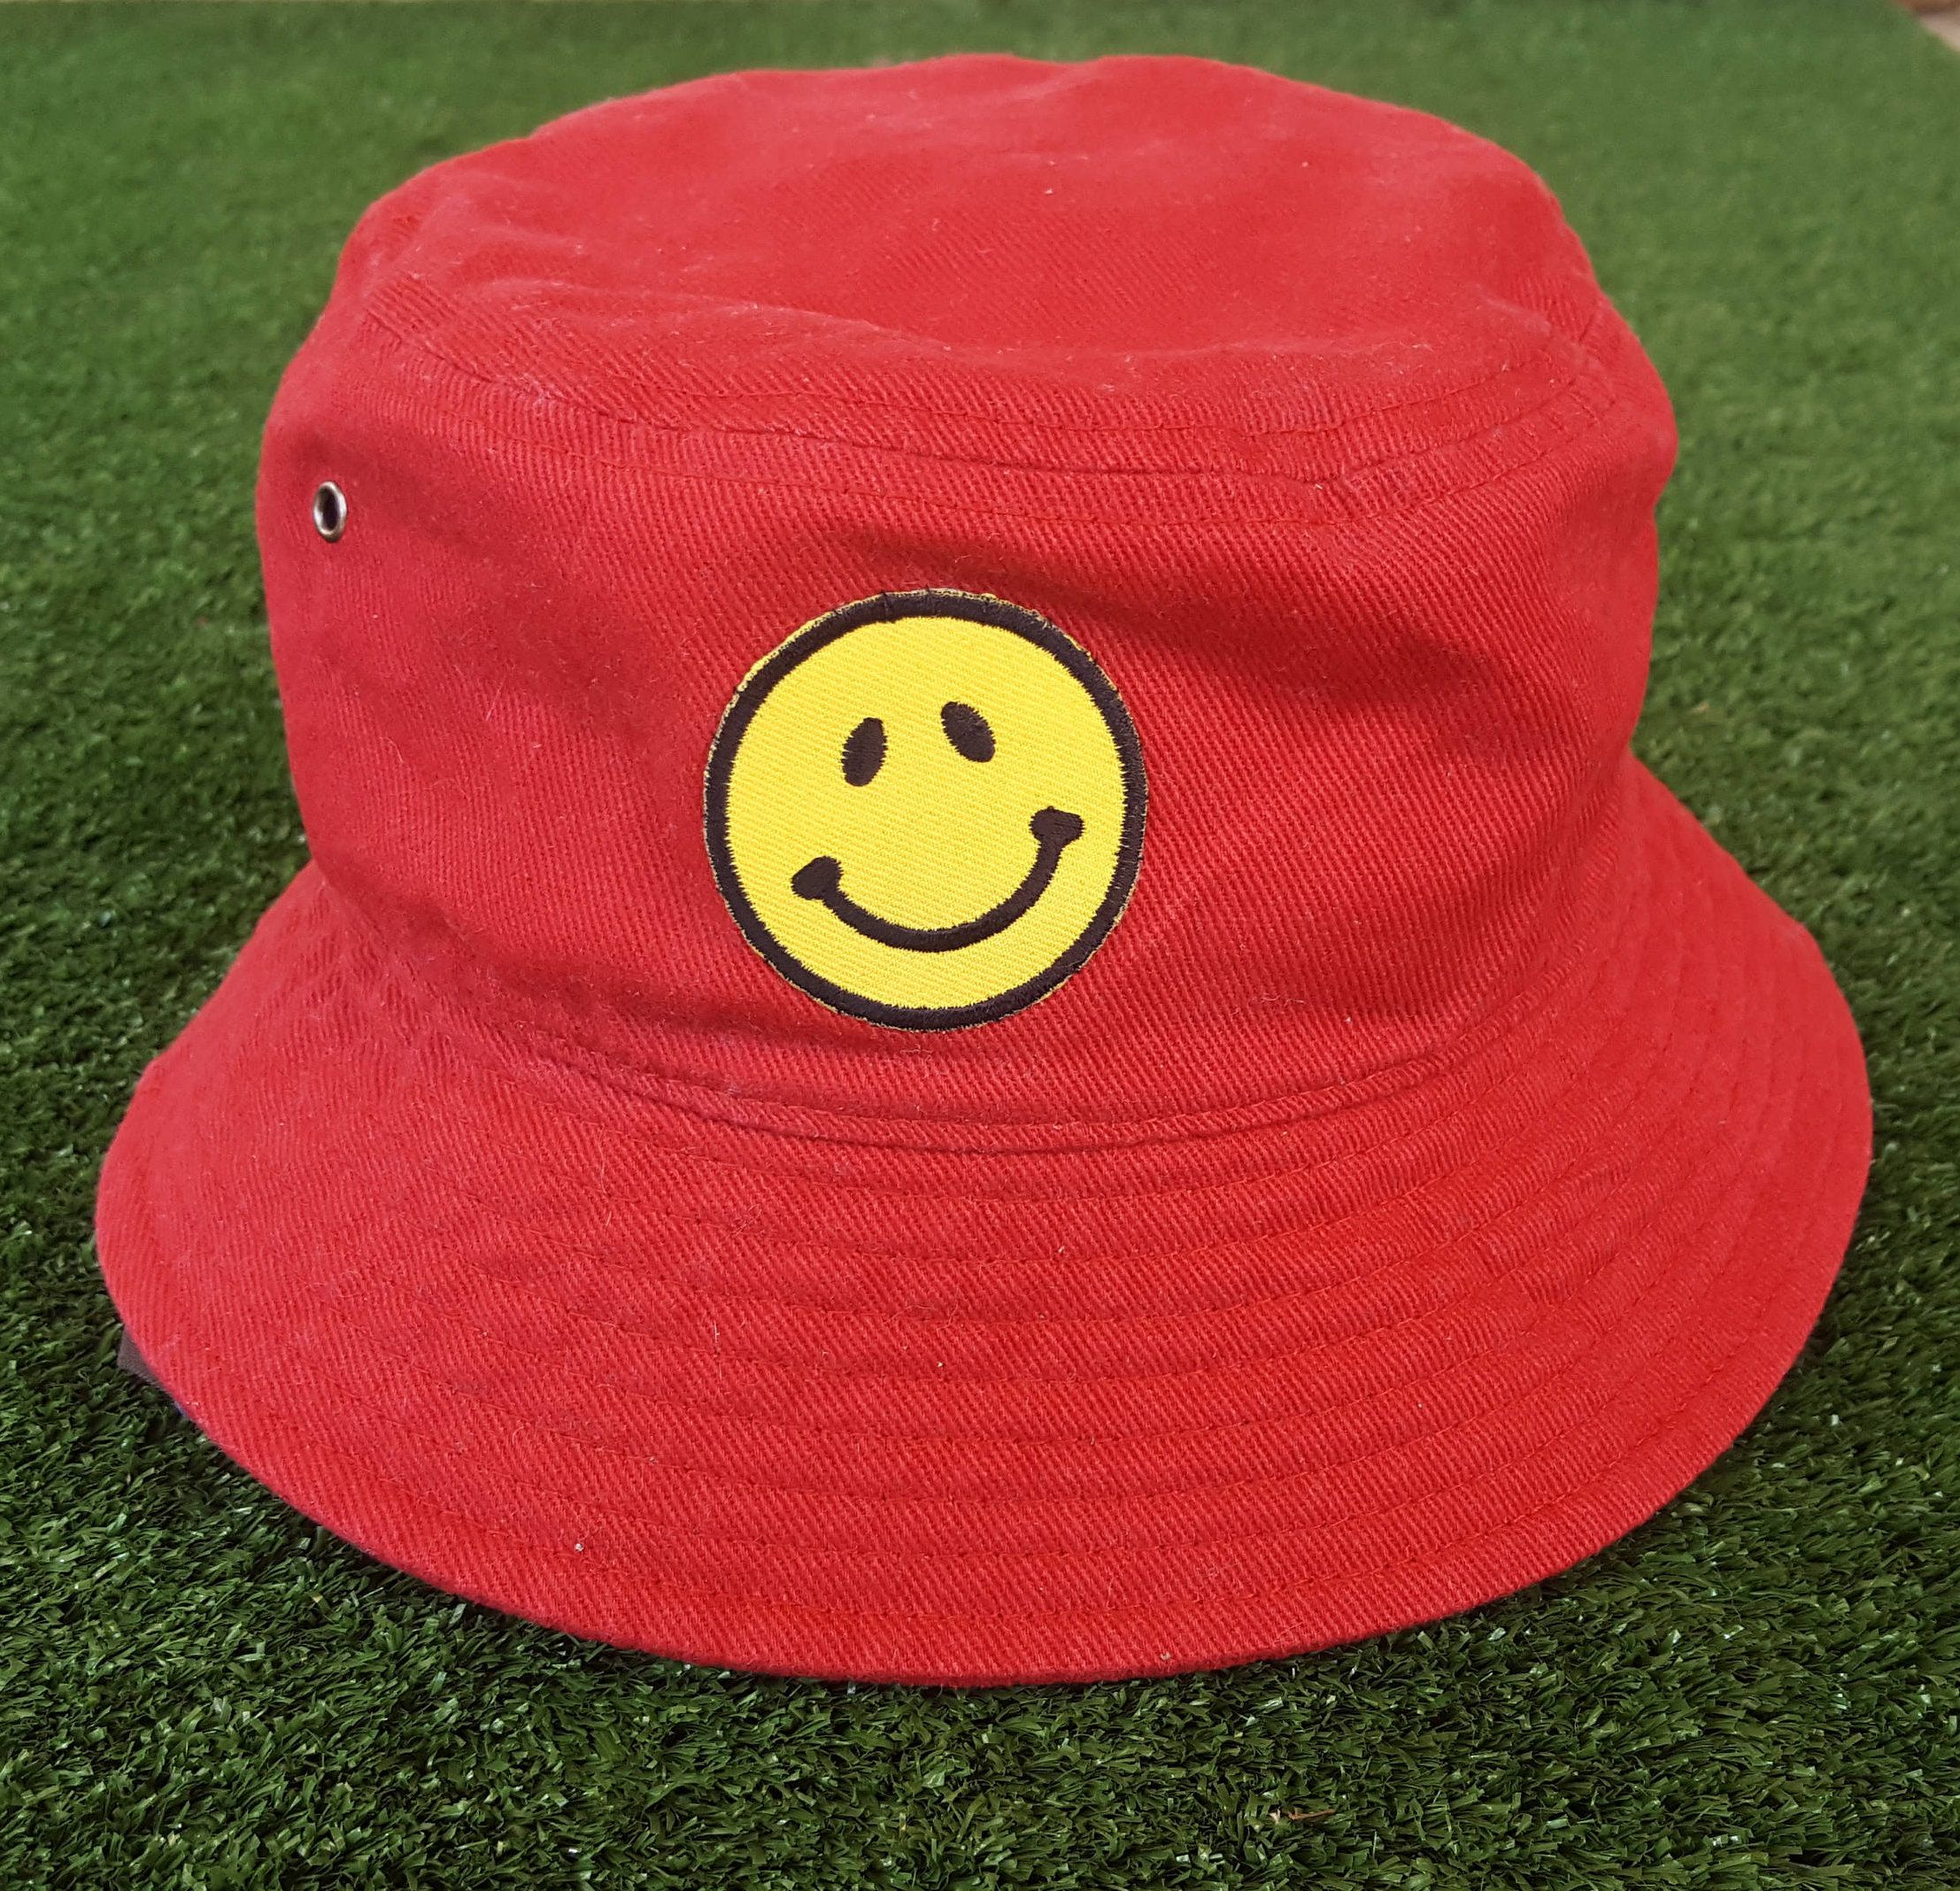 d65c85cbc 90's Raver Bucket Hat, Smiley Face, Hand Patched, Red Dad Hat ...